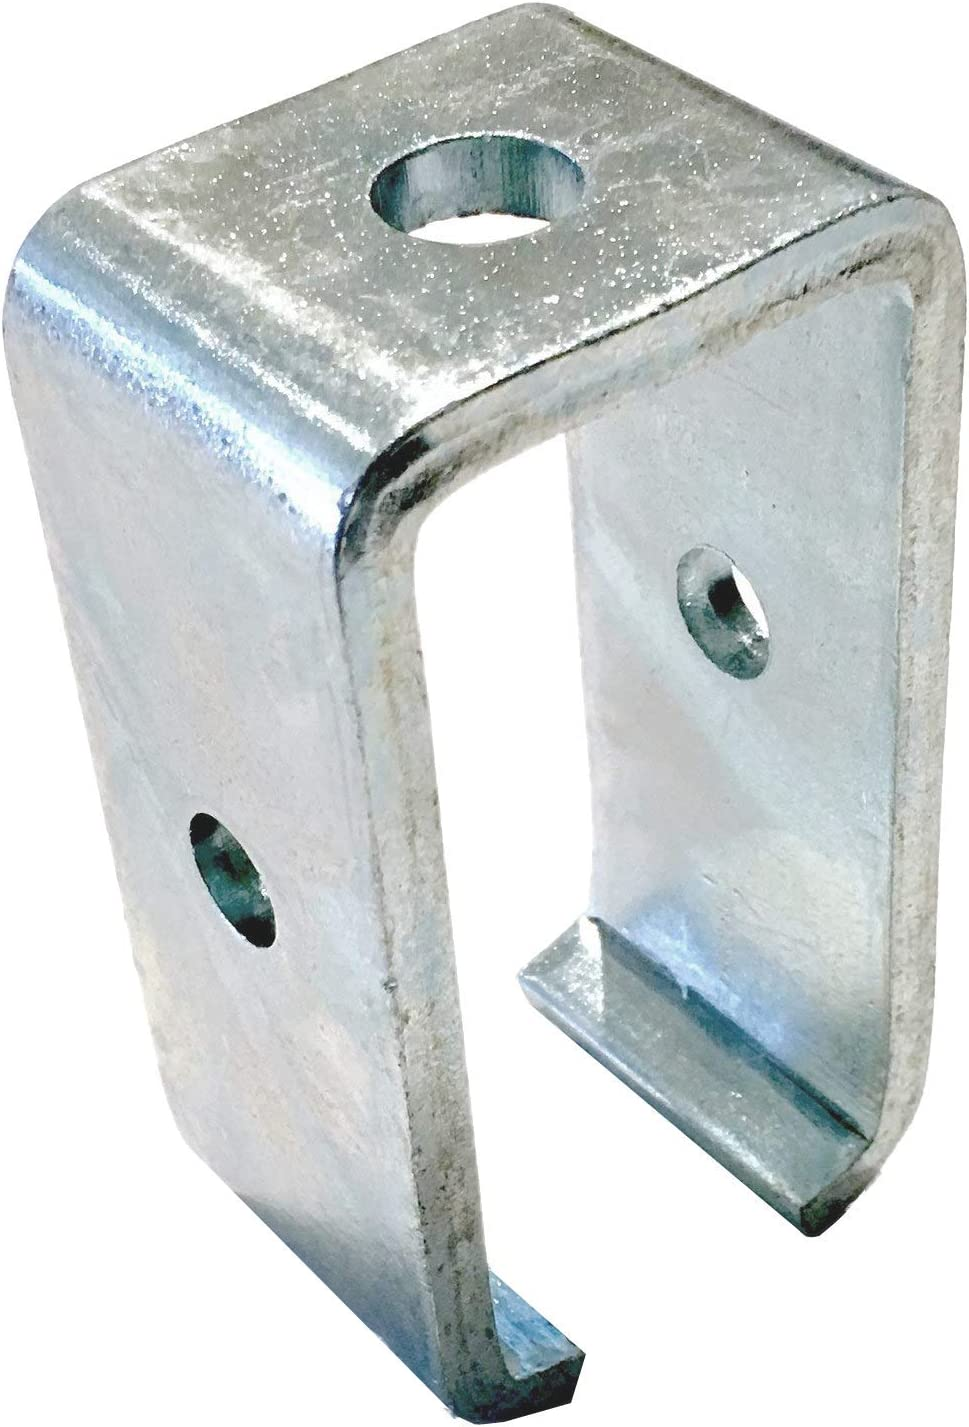 Trolley Beam Support Zinc Plated Electro Galvanized Steel Bracket for All 1-5//8 inch Strut Channels. Andustrial Steel 1 Piece